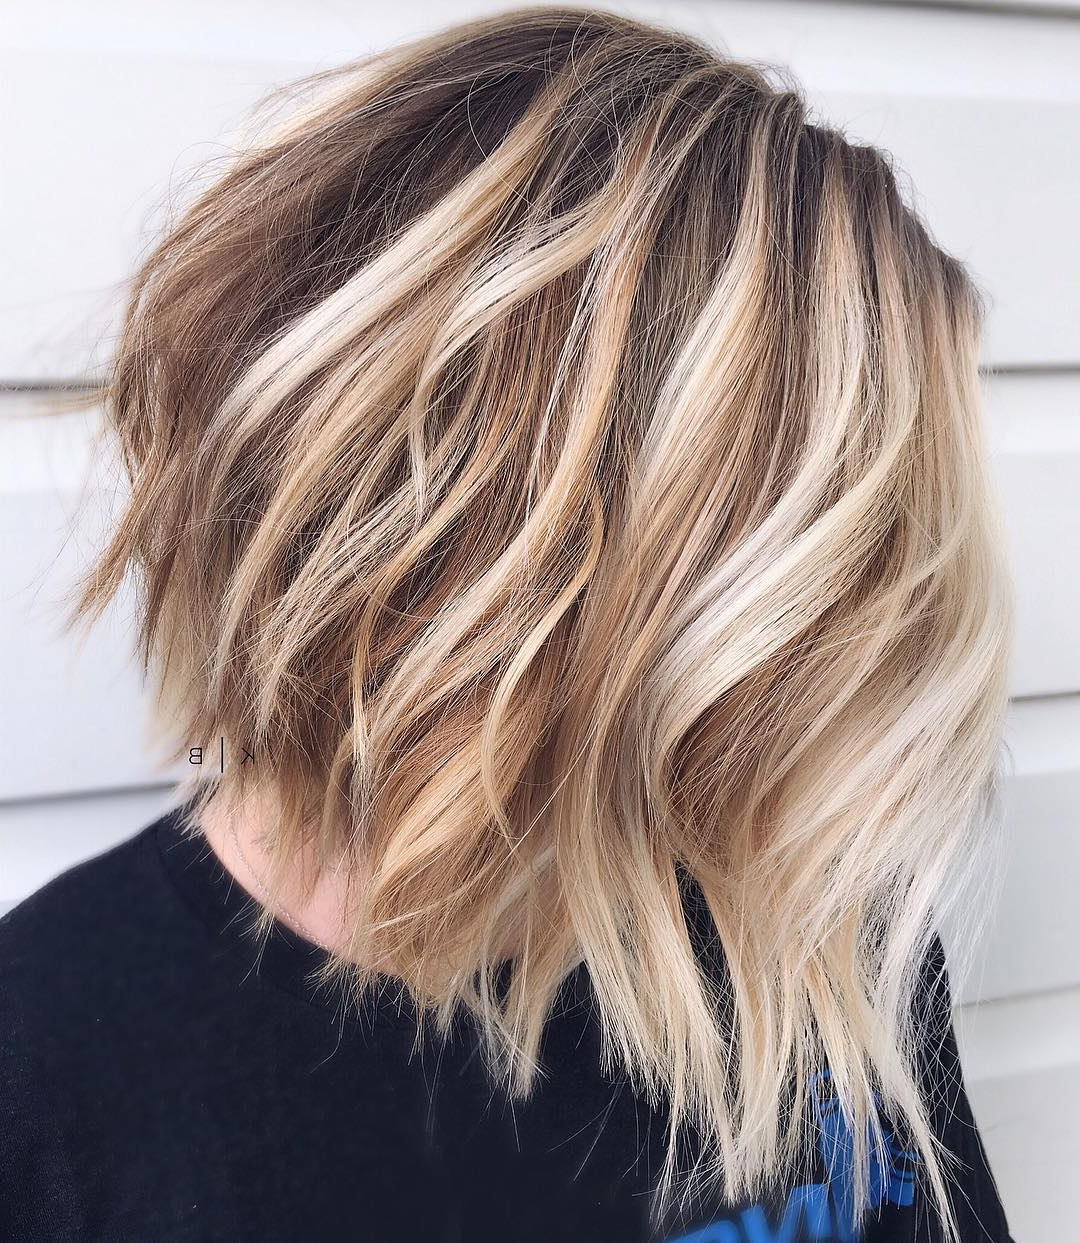 Find Your Best Bob Haircut For 2019 Throughout Disconnected Shaggy Brunette Bob Hairstyles (Gallery 14 of 20)